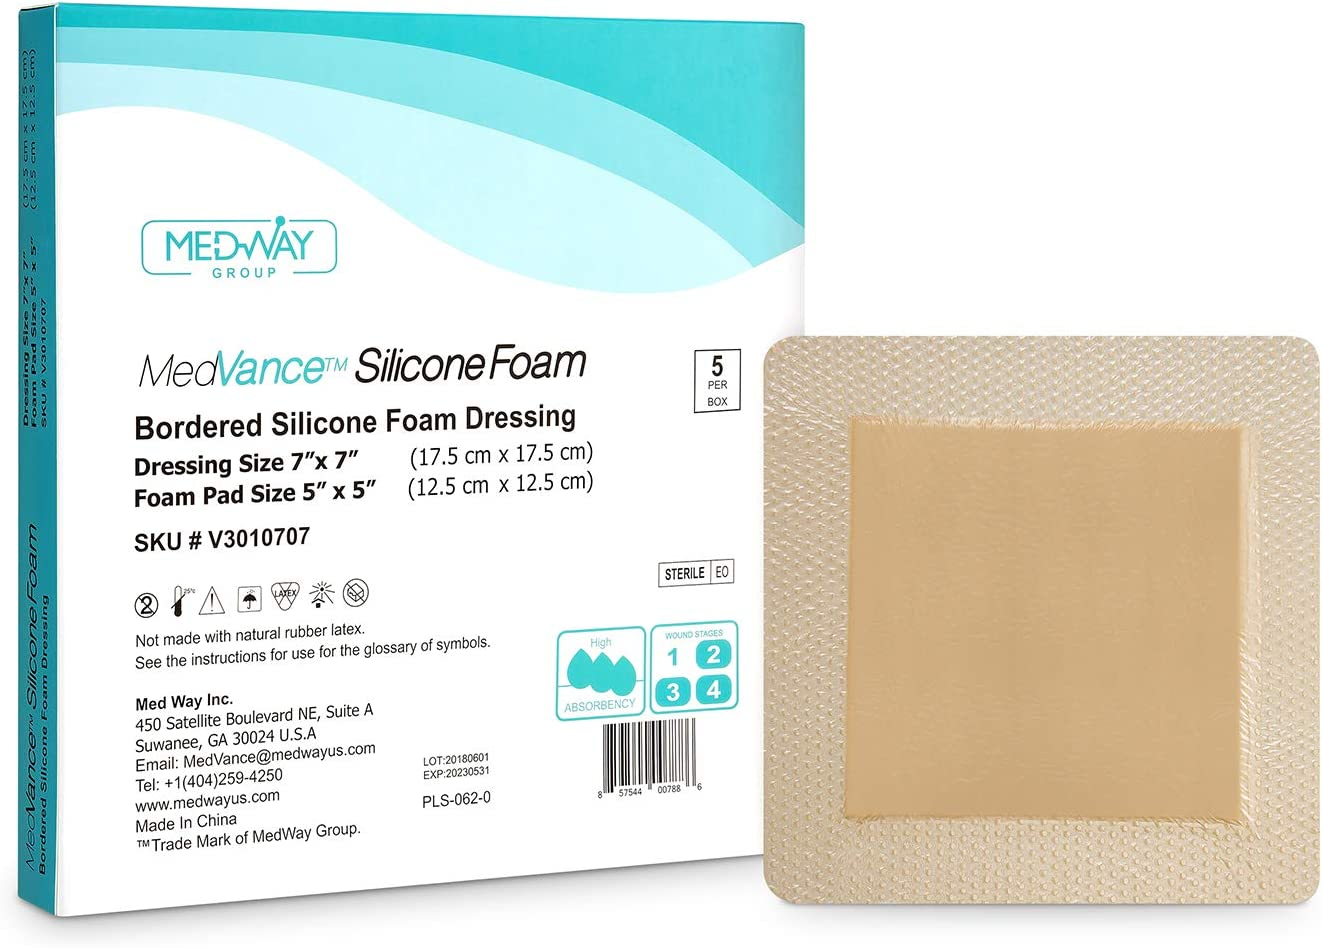 MedVance TM Silicone Max 61% OFF - Adhesive Foam Over item handling ☆ Dressing Bordered